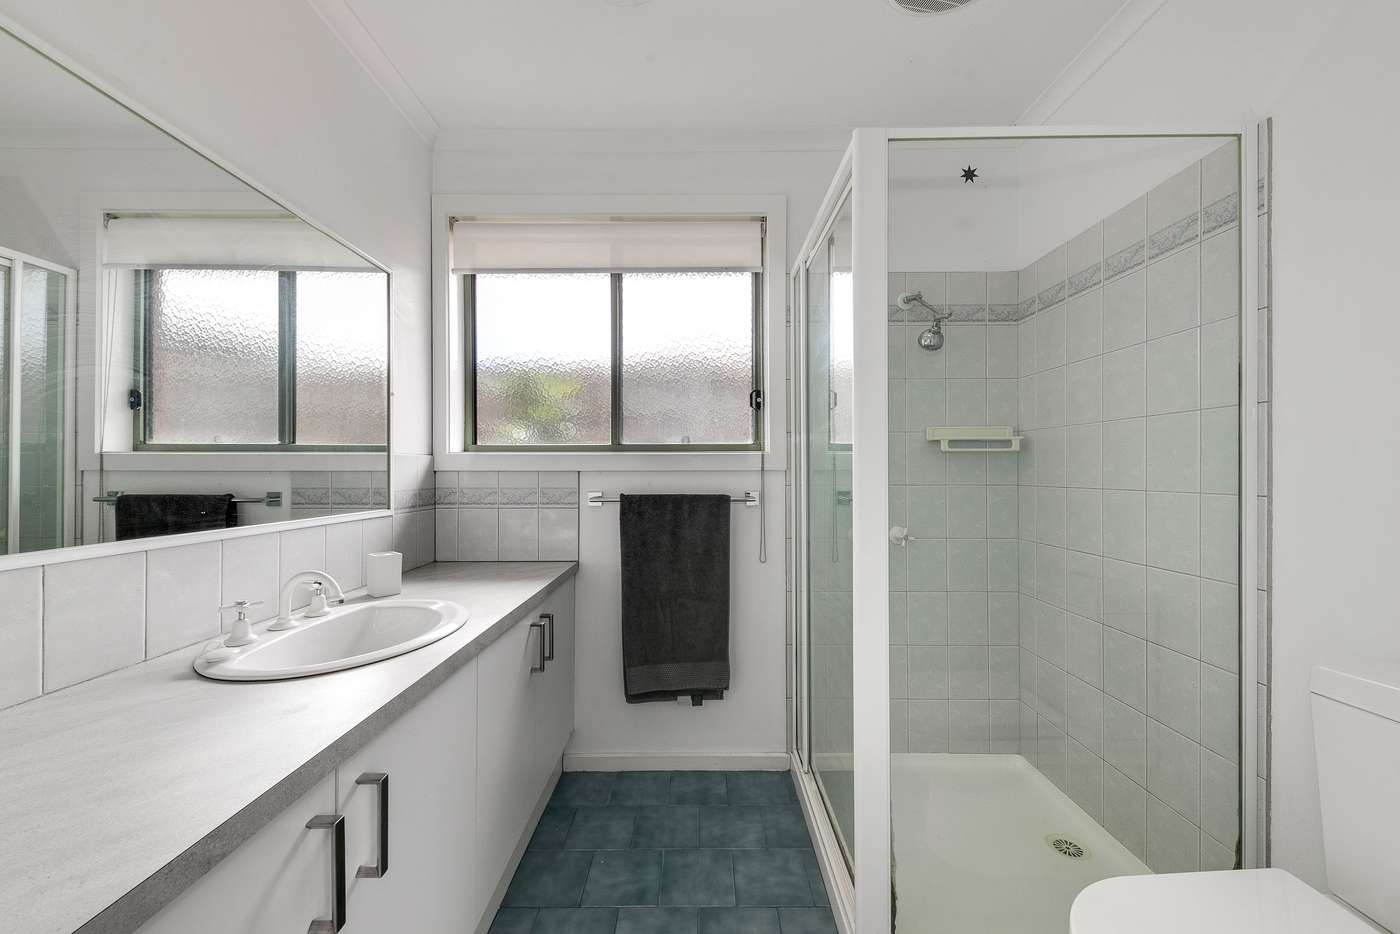 Sixth view of Homely house listing, 19 Dulnain Street, Mount Martha VIC 3934